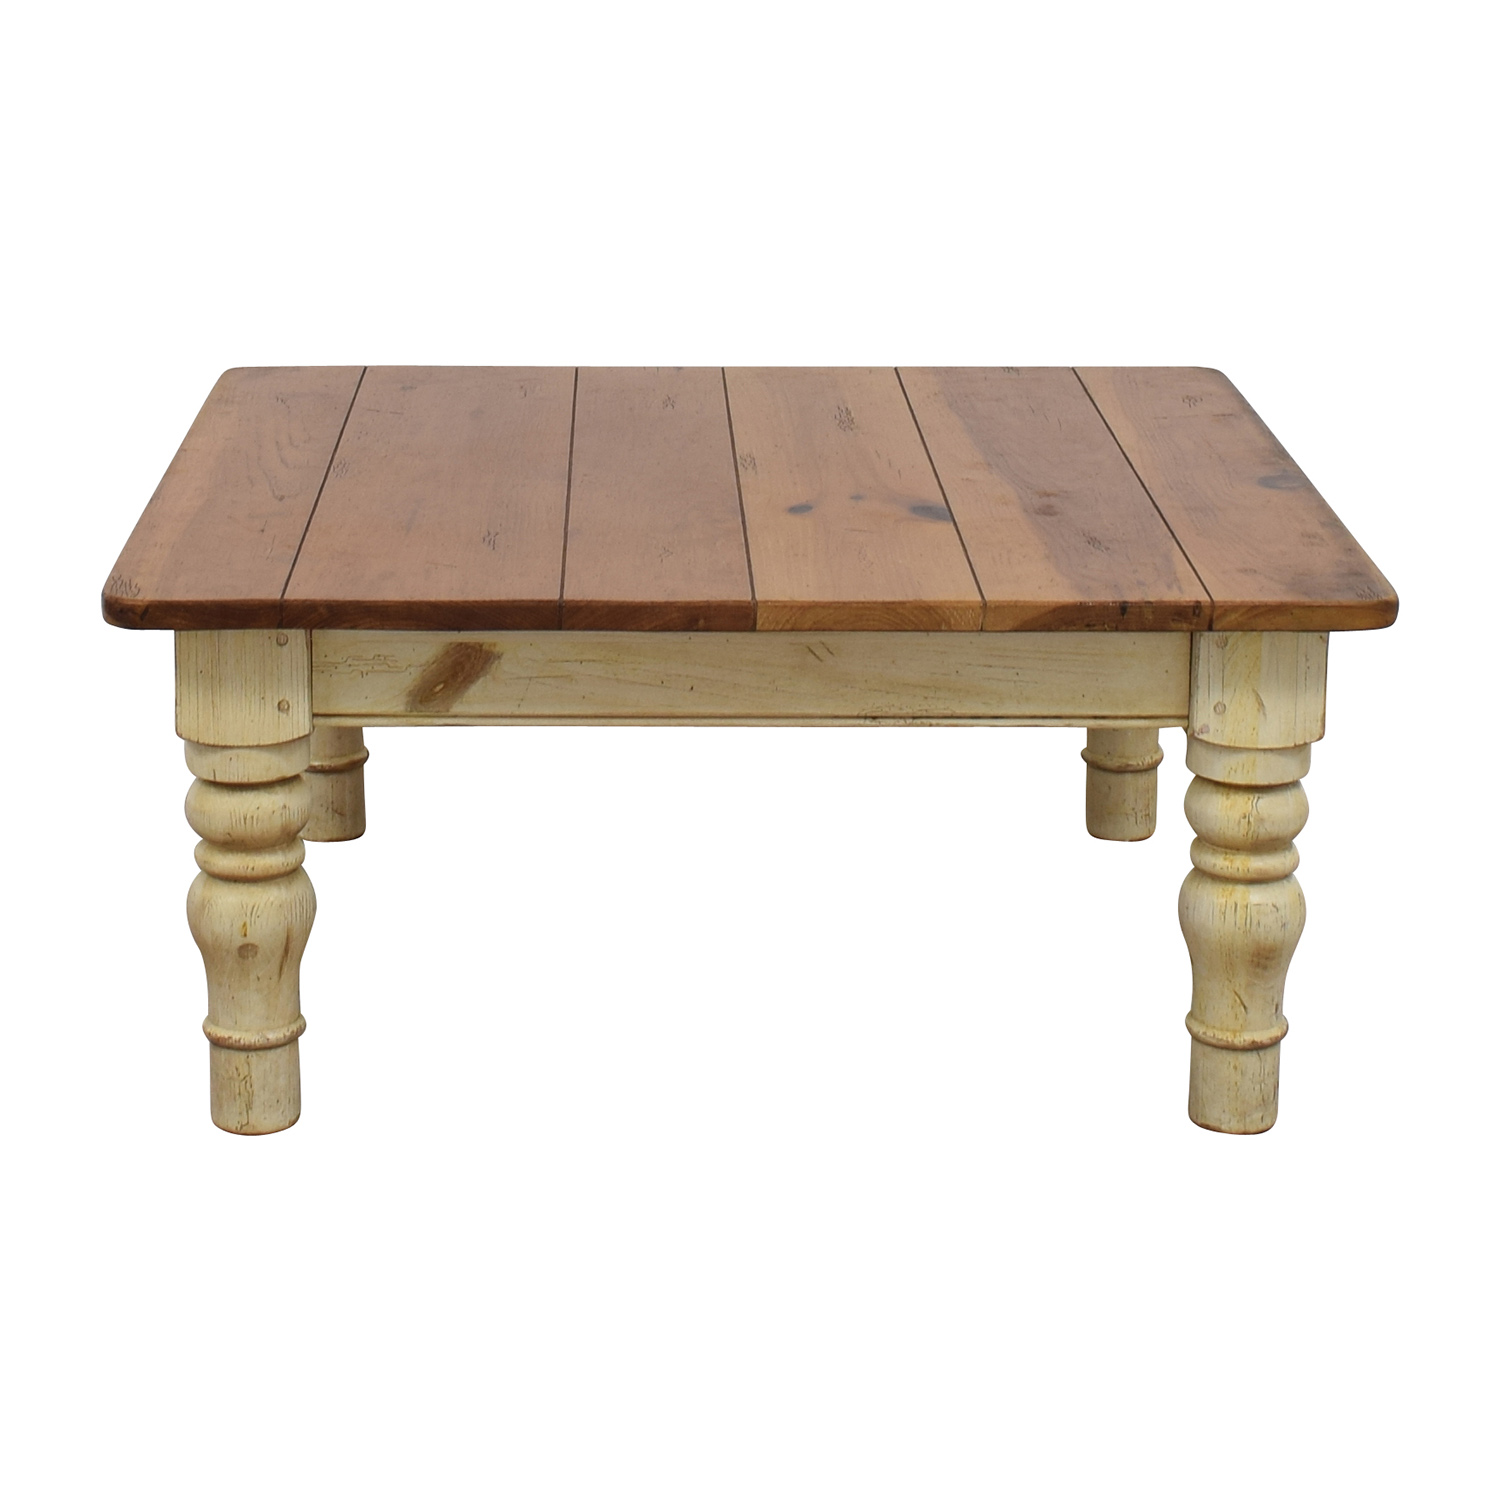 Outstanding 90 Off Ethan Allen Ethan Allen Farmhouse Cherry Wood Coffee Table Tables Gmtry Best Dining Table And Chair Ideas Images Gmtryco